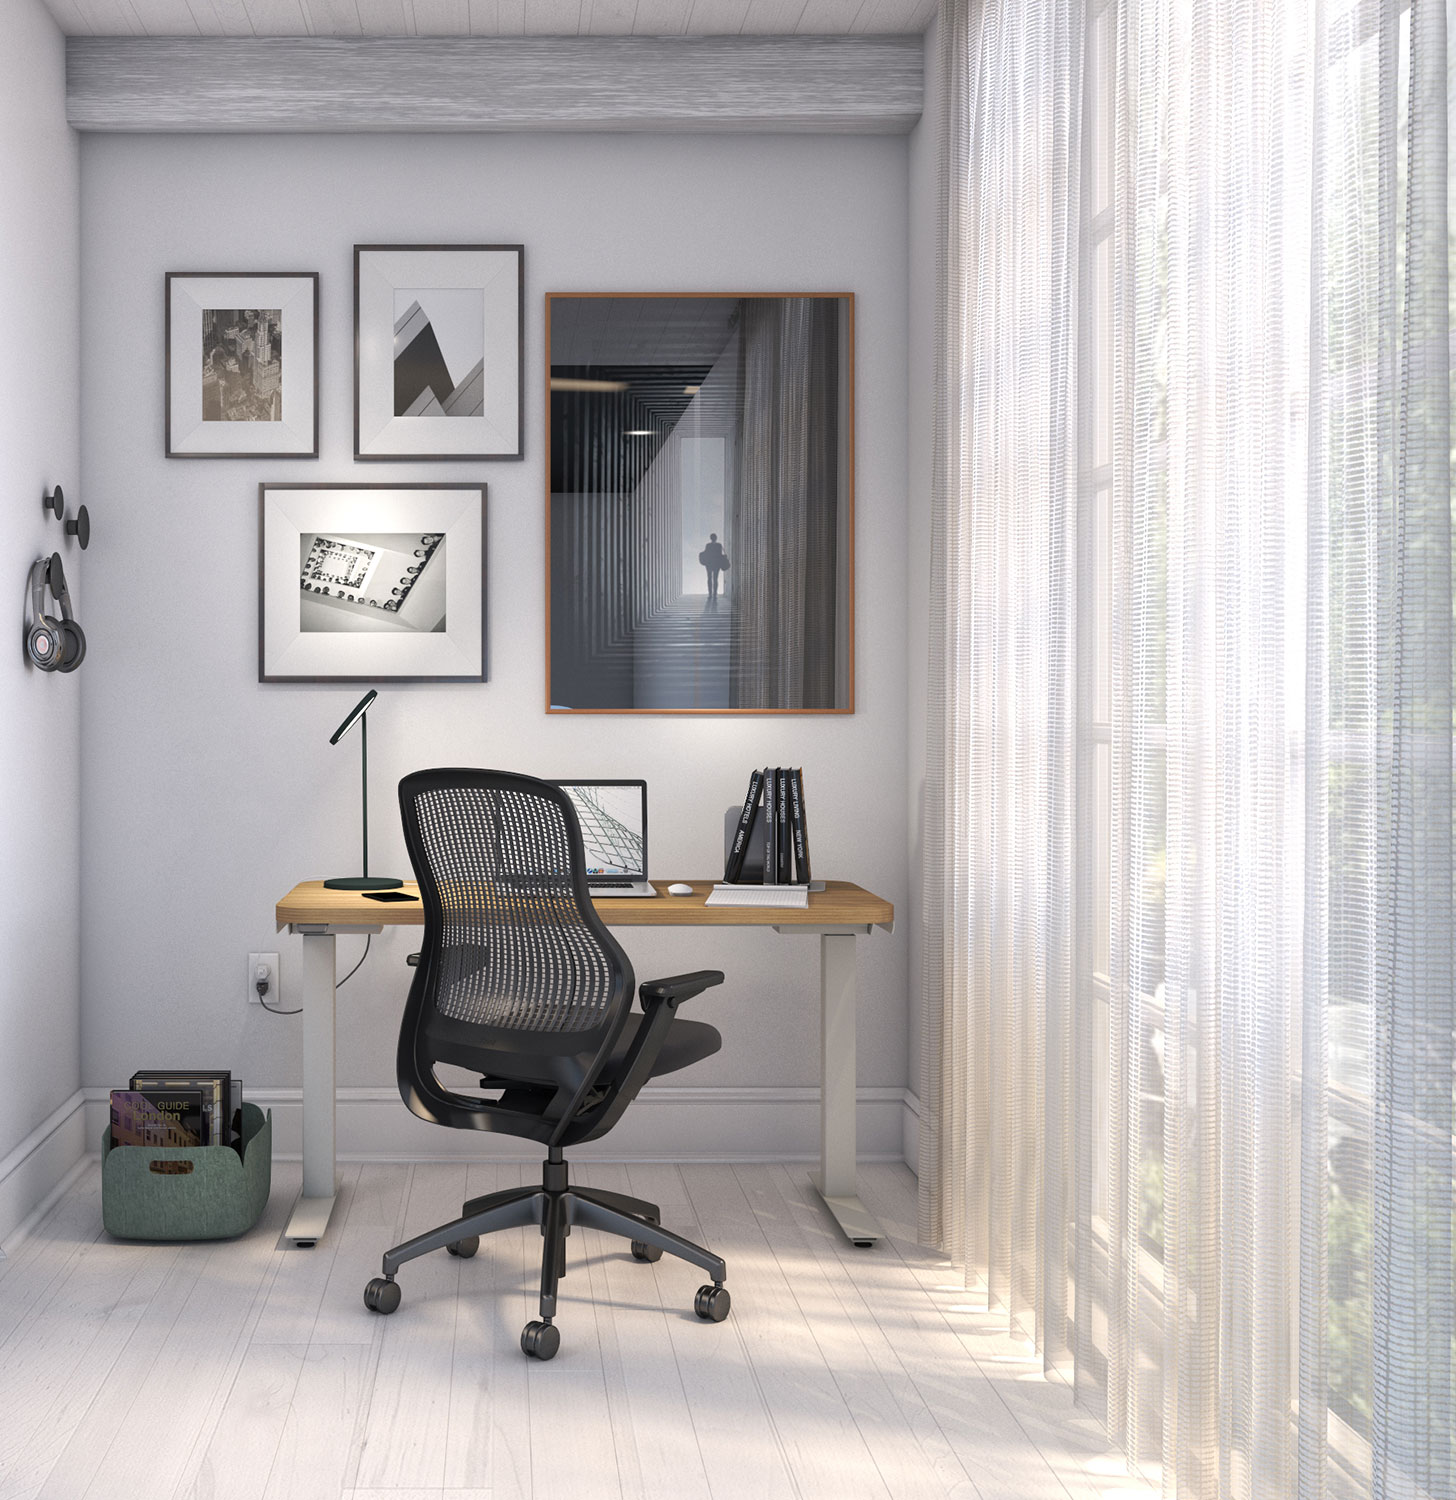 How To Design A Home Office Setup That's Right For You